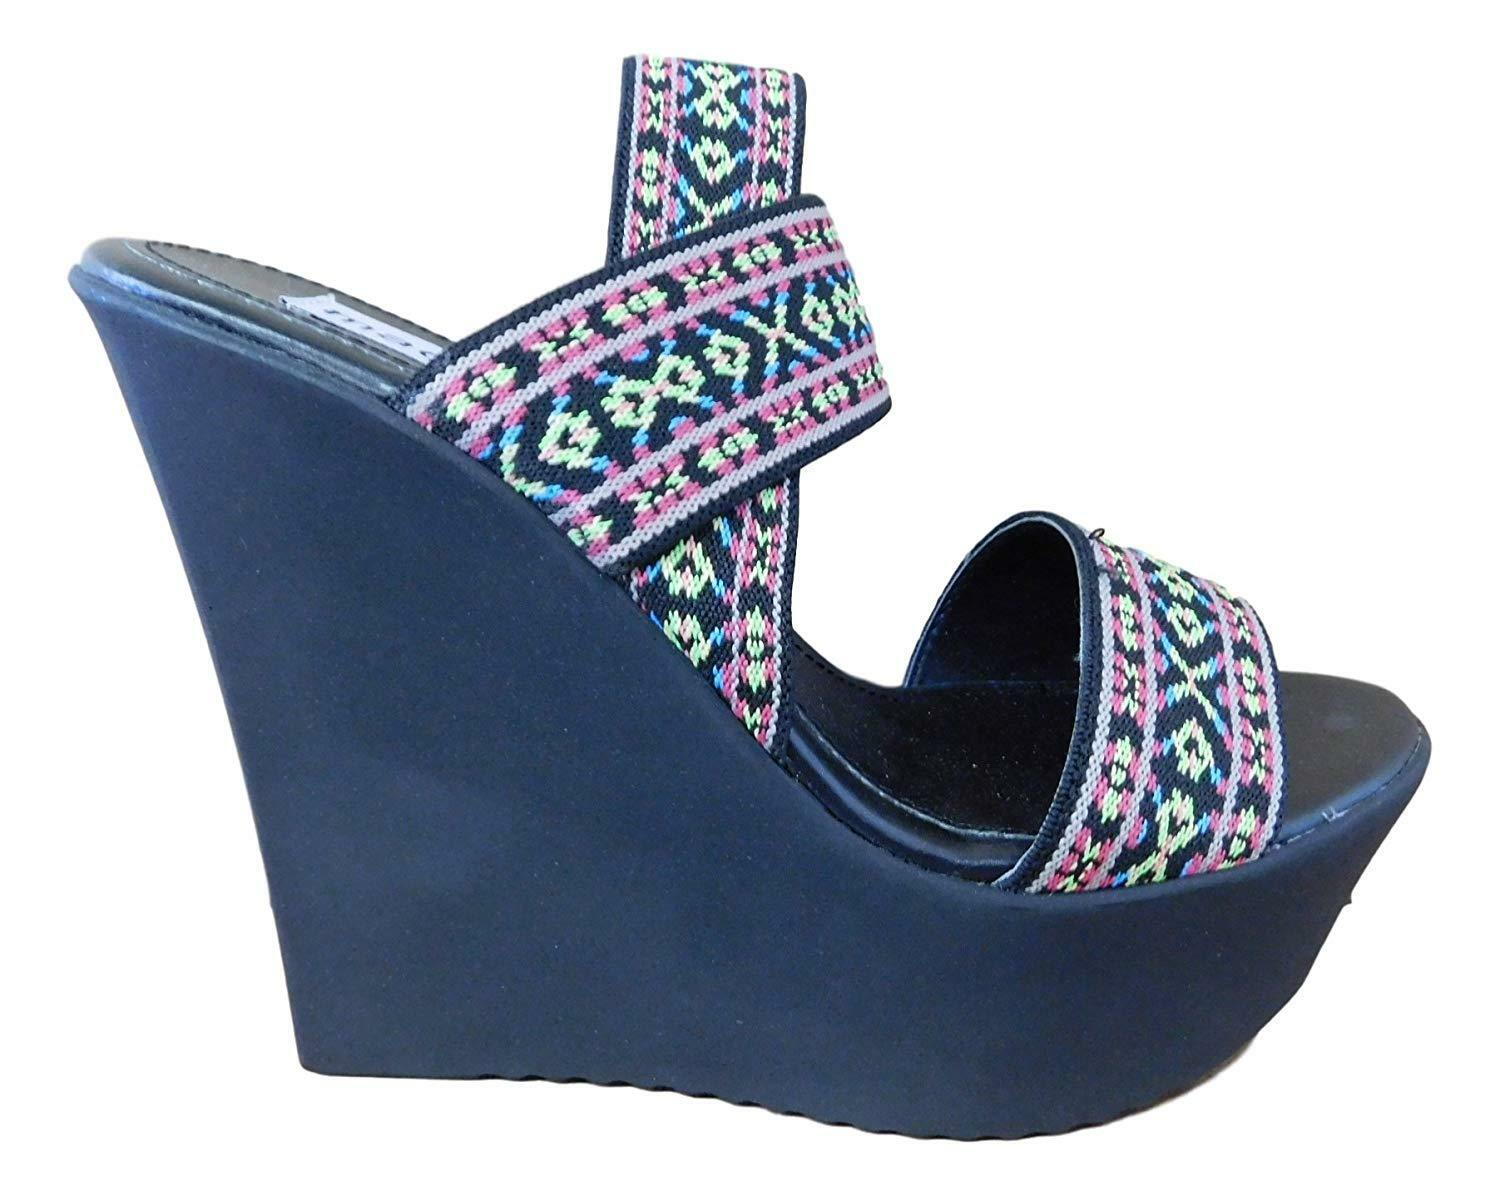 Madden Girl Women's Wedge Sabel Strappy Canvas Open Toe Wedge Women's Sandals, 7 c08c0f